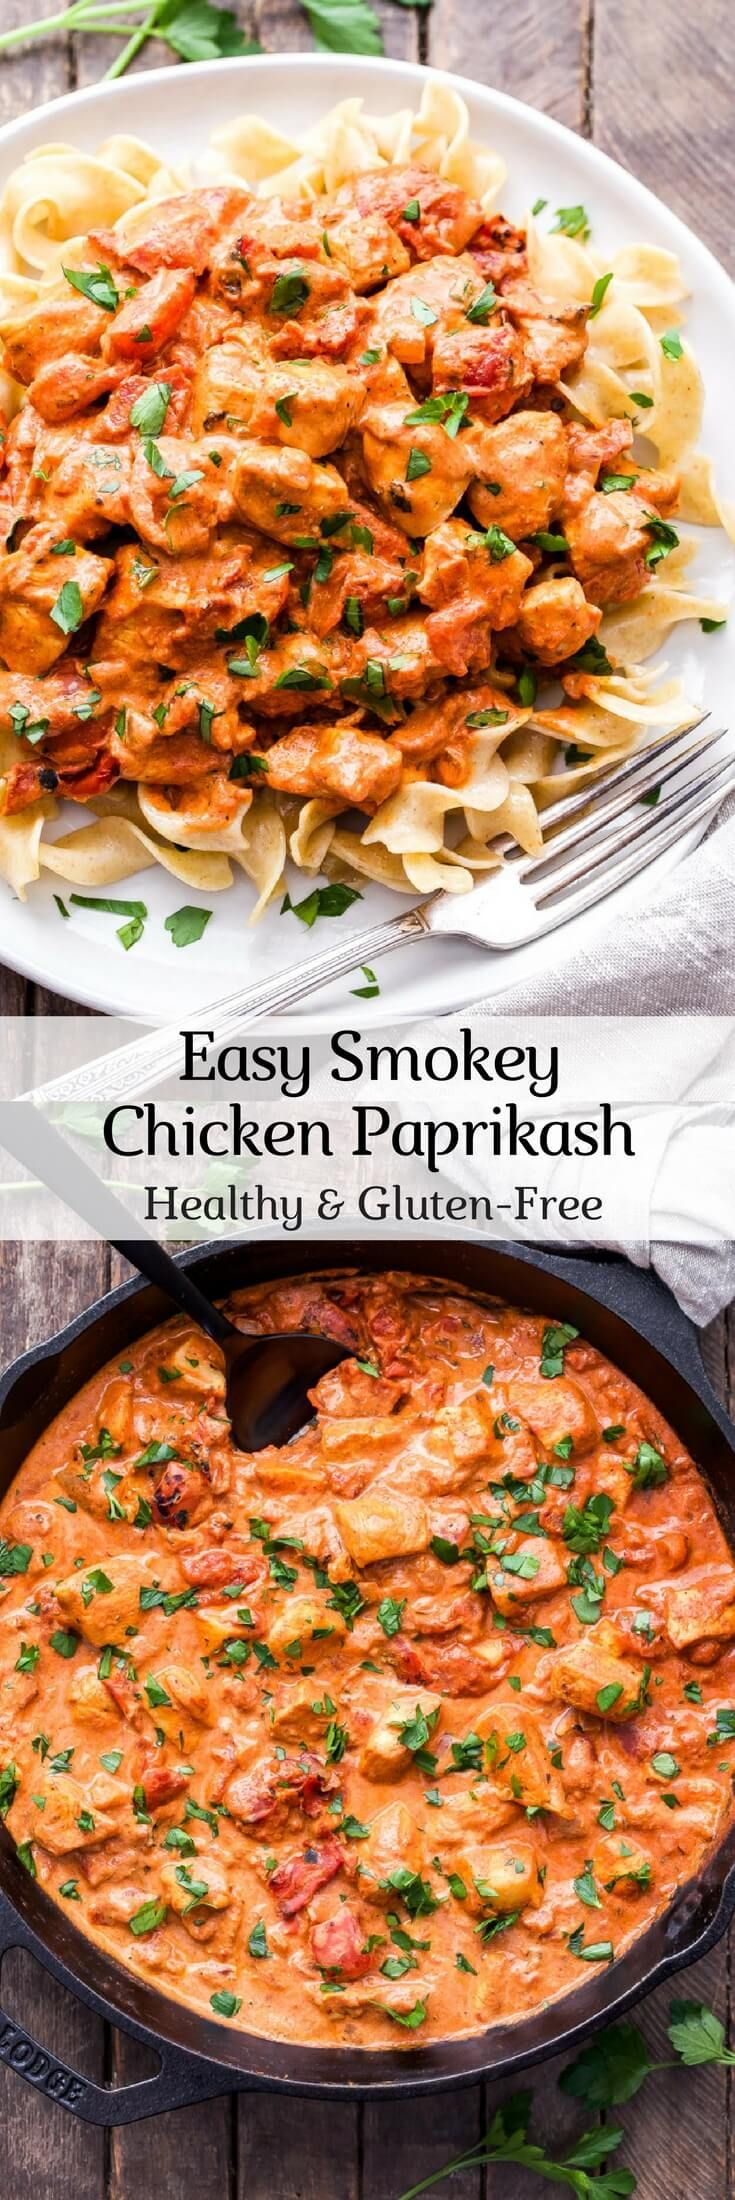 Easy Smokey Chicken Paprikash is a healthy, one skillet version of traditional chicken paprikash. Serve over egg noodles.